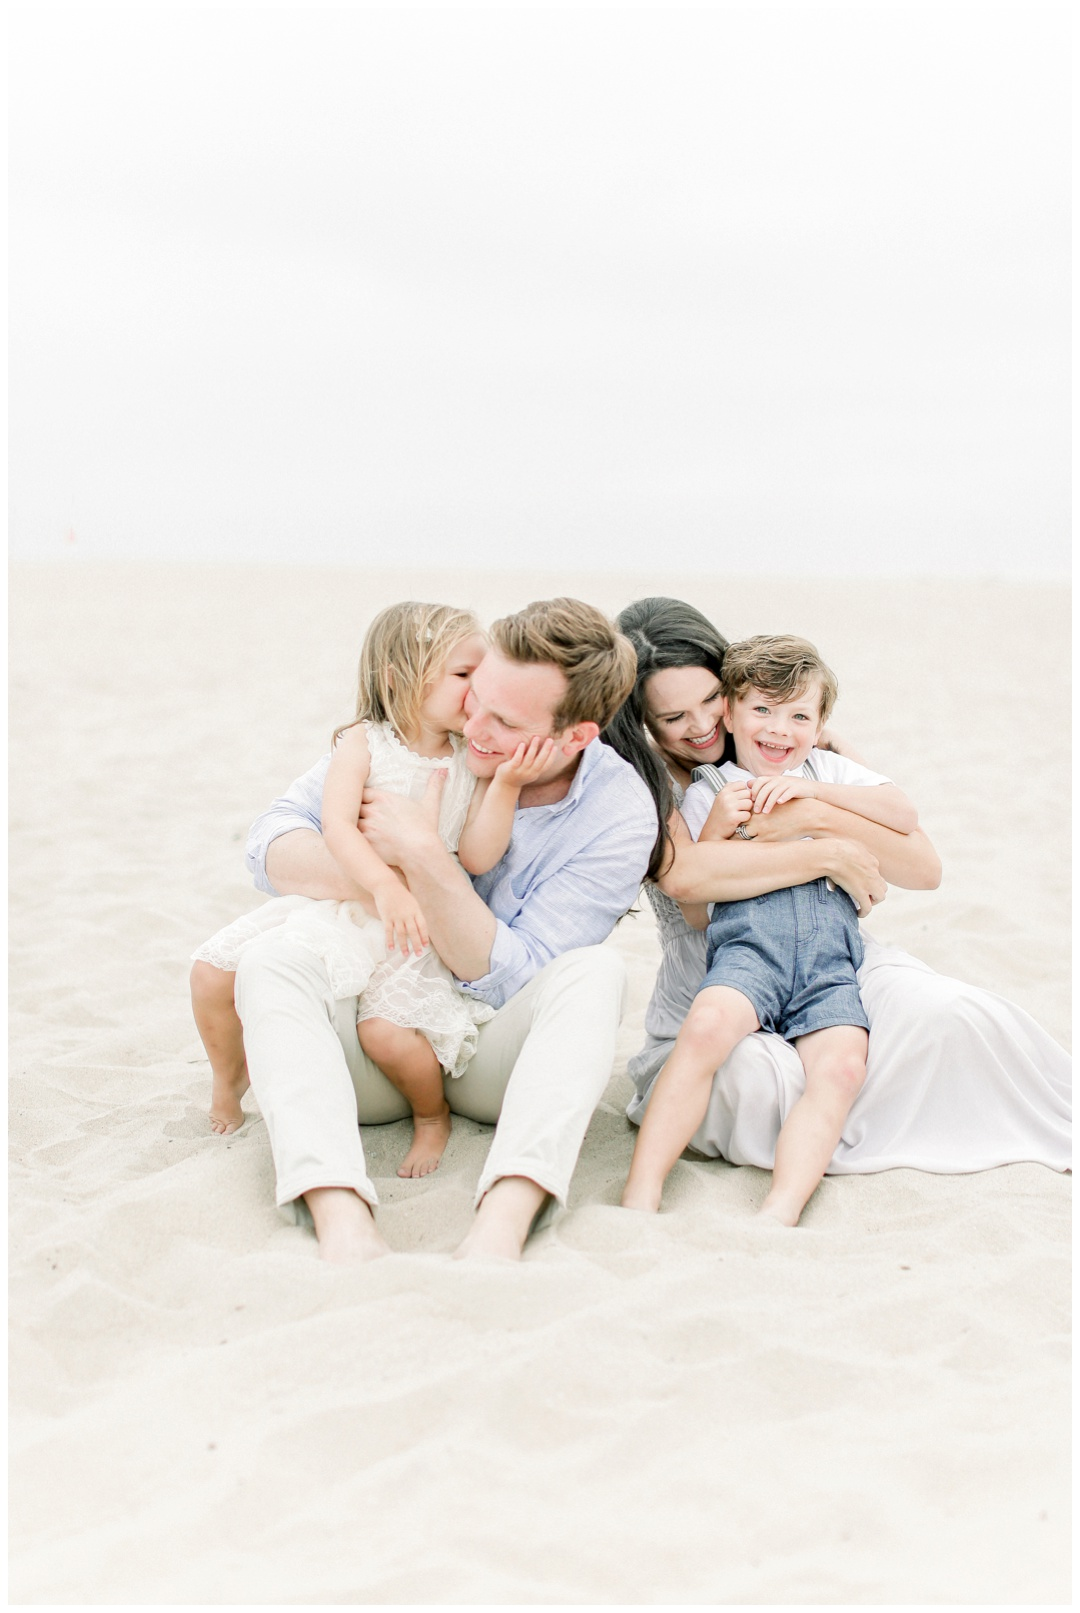 Huntington_Beach_Family_Photographer_The_Wood_Family_Lifestyle_Newport_Beach_Family_Photographer_Orange_County_Newborn_Photography_Cori_Kleckner_Photography_Orange_County_Beach_Photography_Huntington_Beach_Family_Session__1636.jpg